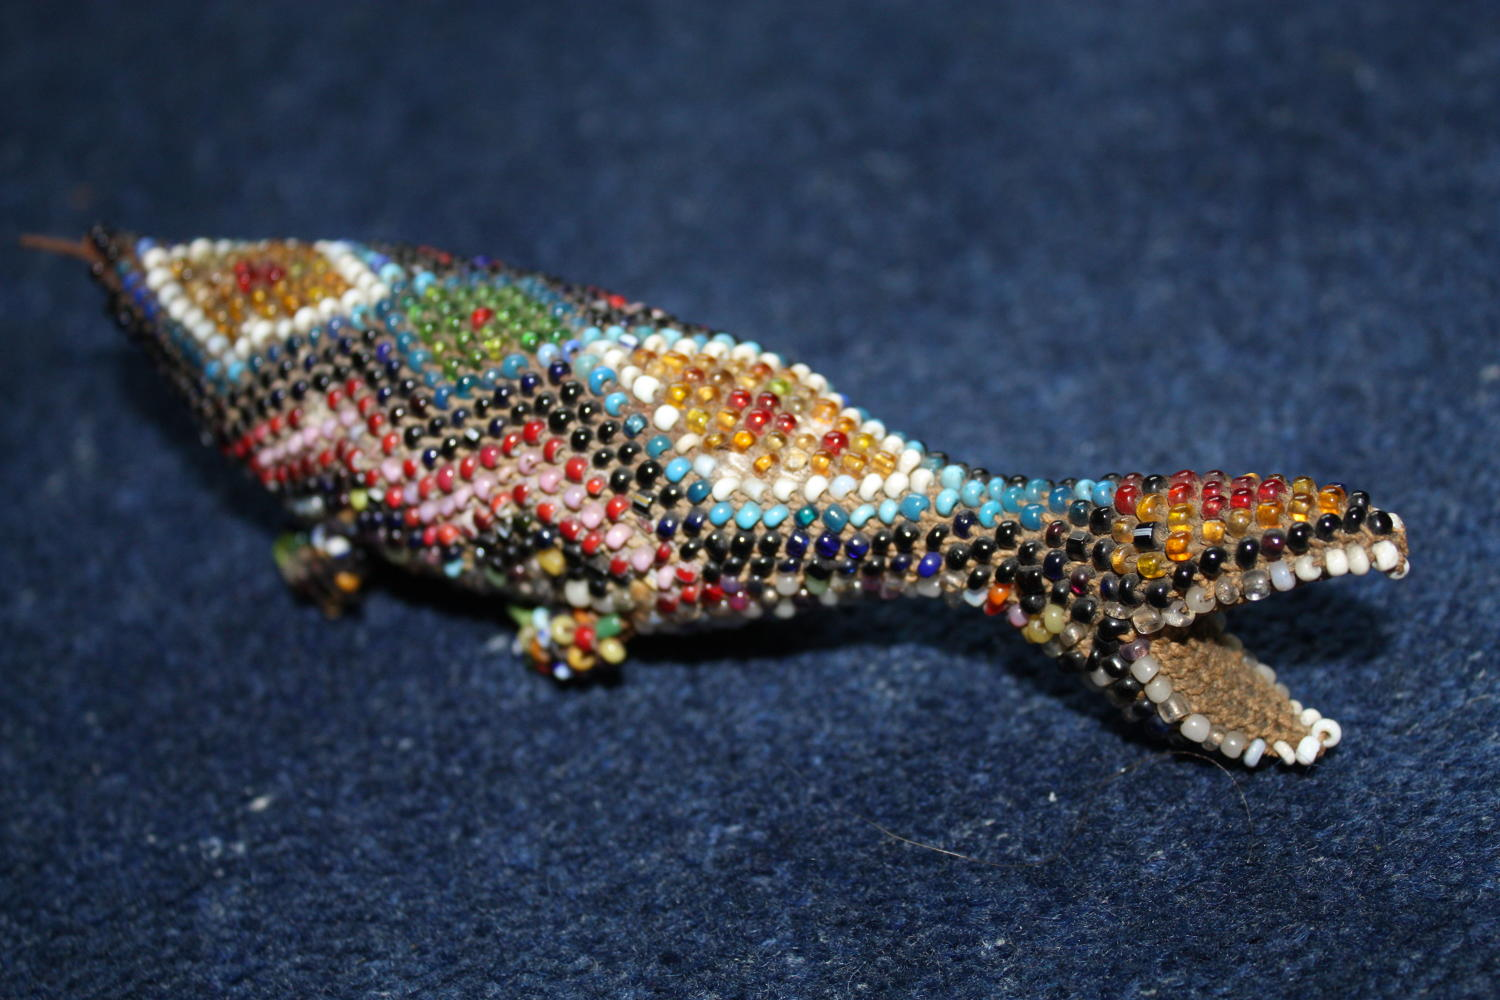 Ottoman Turkish Prisoner of War made beaded lizard dated 1917.